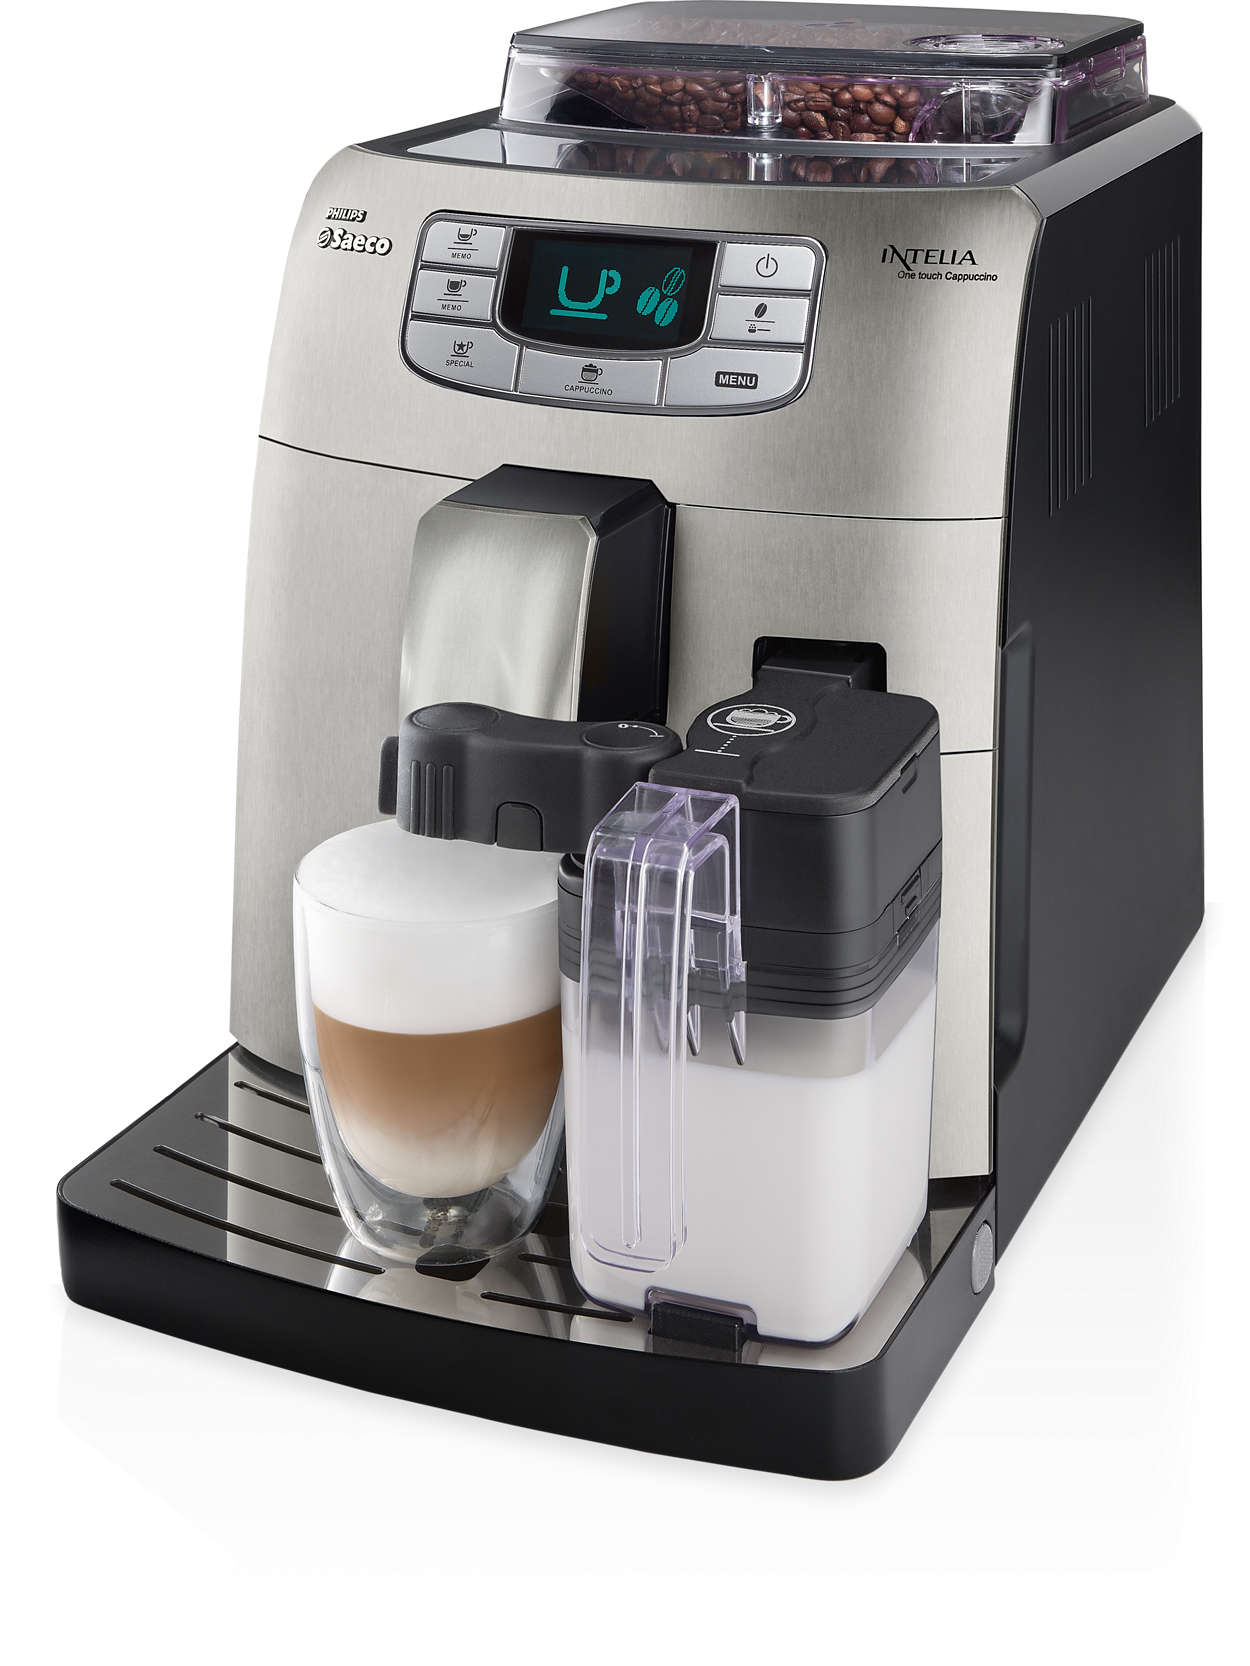 One touch Espresso and Cappuccino